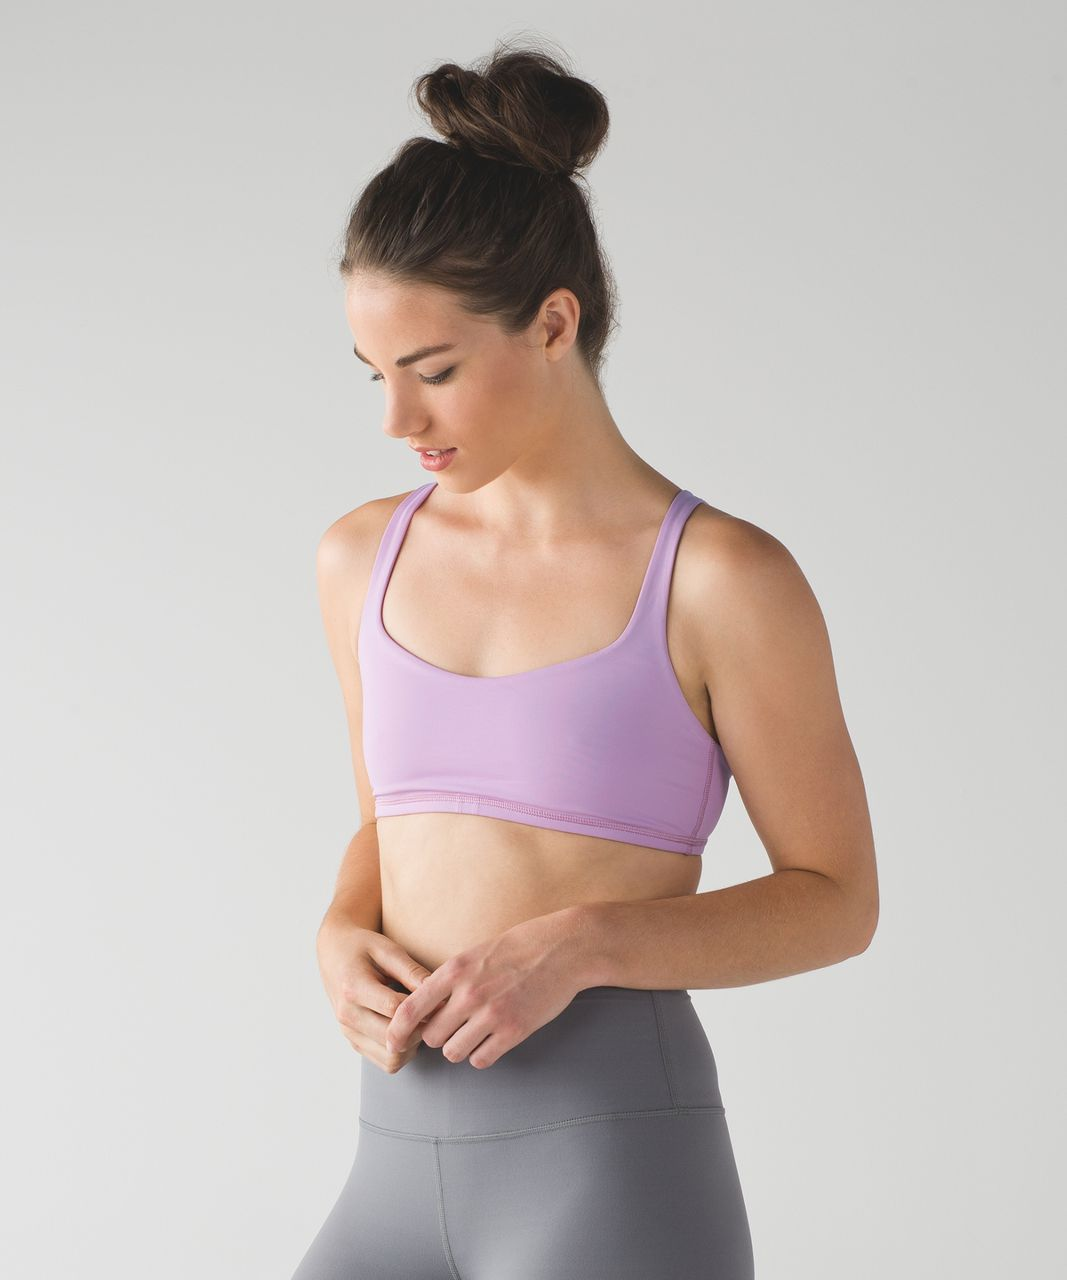 Lululemon Free To Be Bra - Rose Blush (First Release)